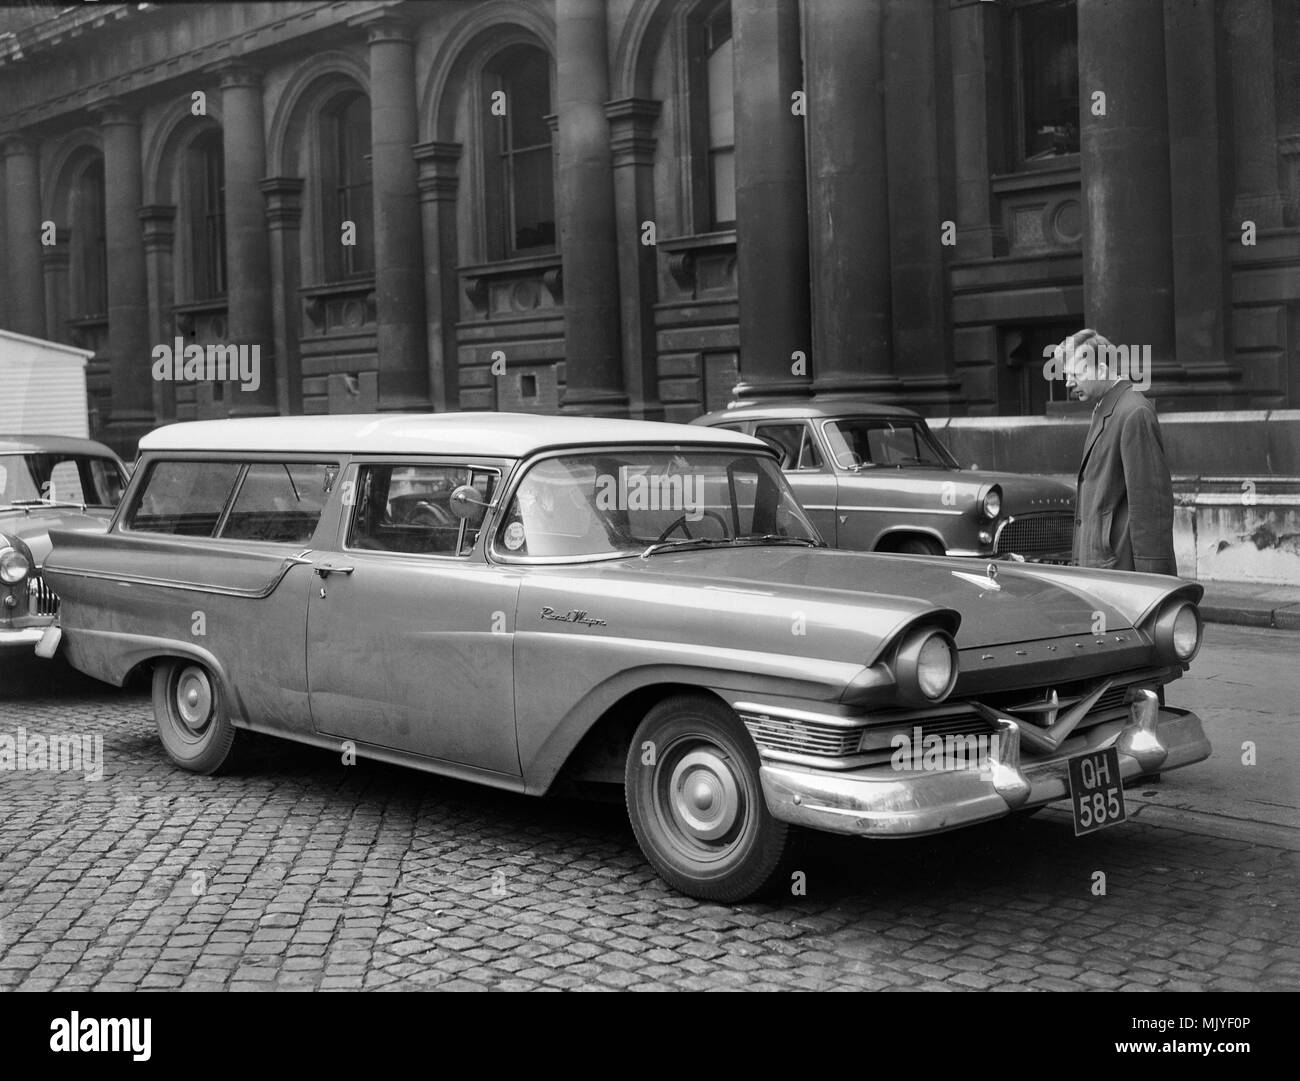 Ford Station Wagon Stock Photos & Ford Station Wagon Stock